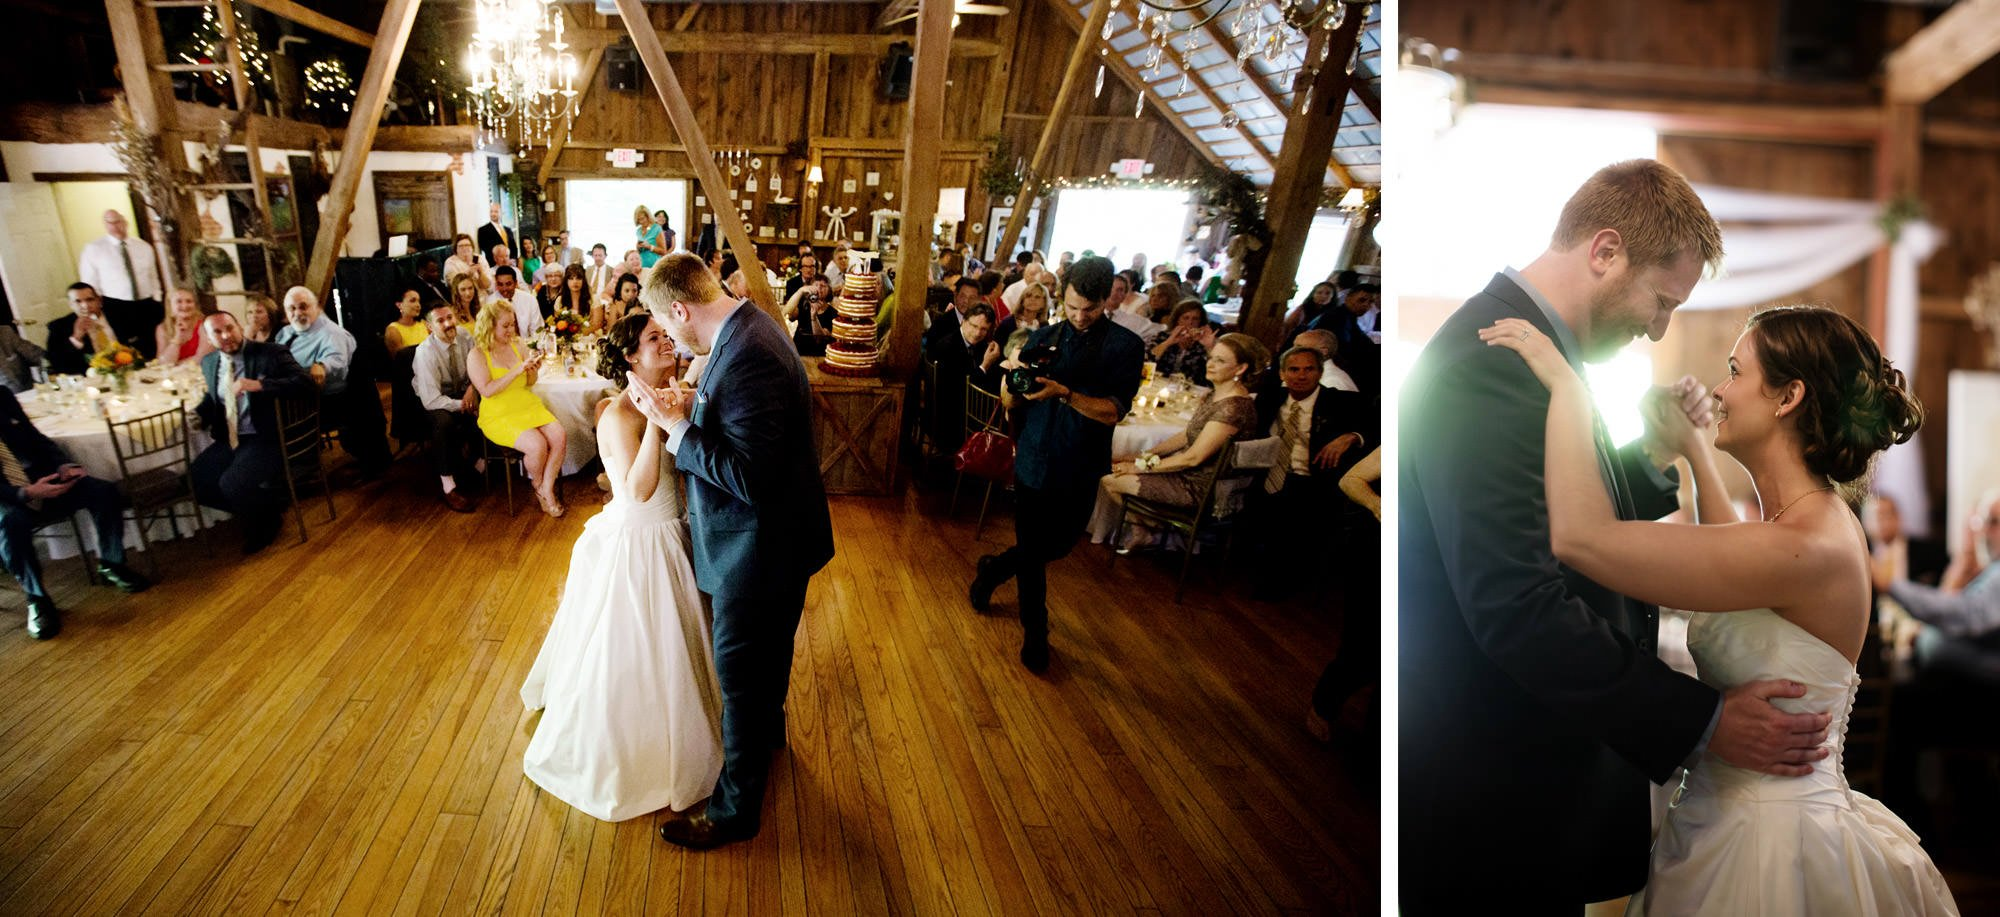 The bride and groom's first dance at Chanteclaire Farm.